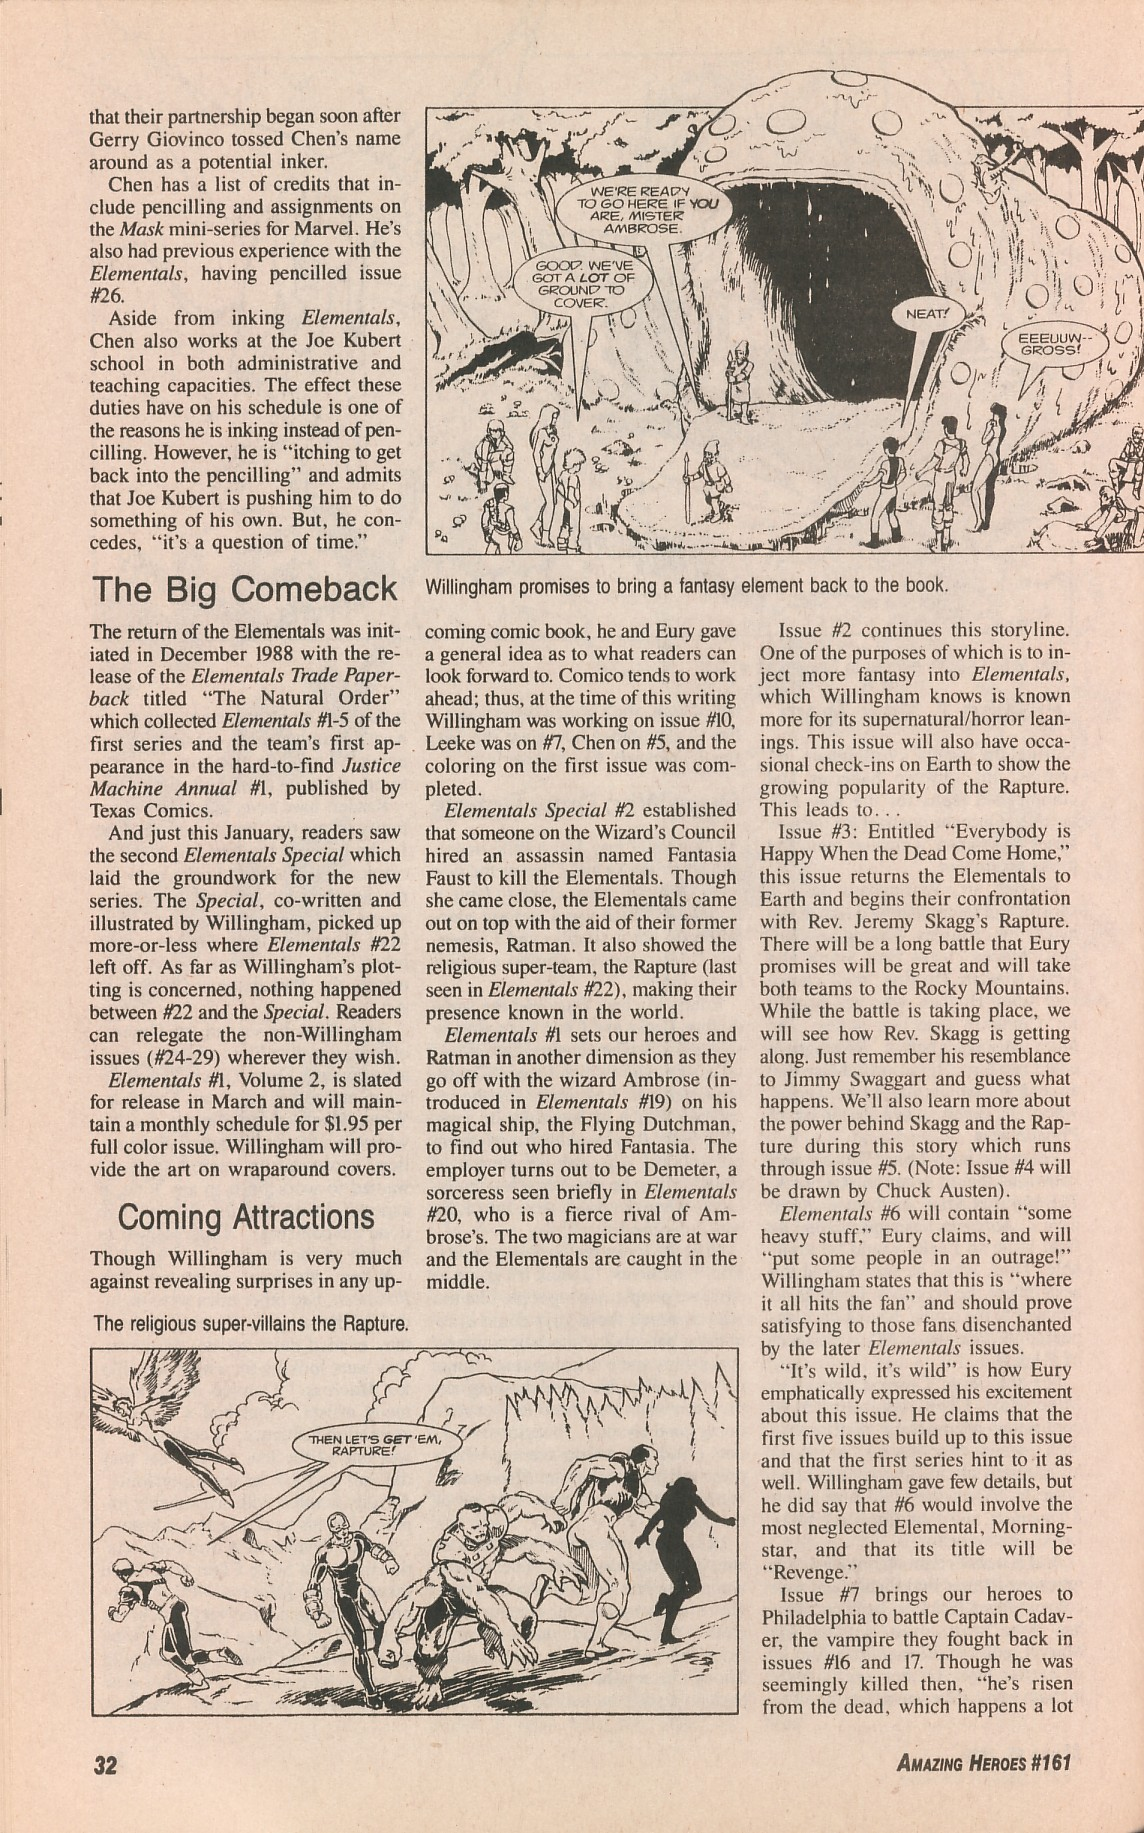 Read online Amazing Heroes comic -  Issue #161 - 32